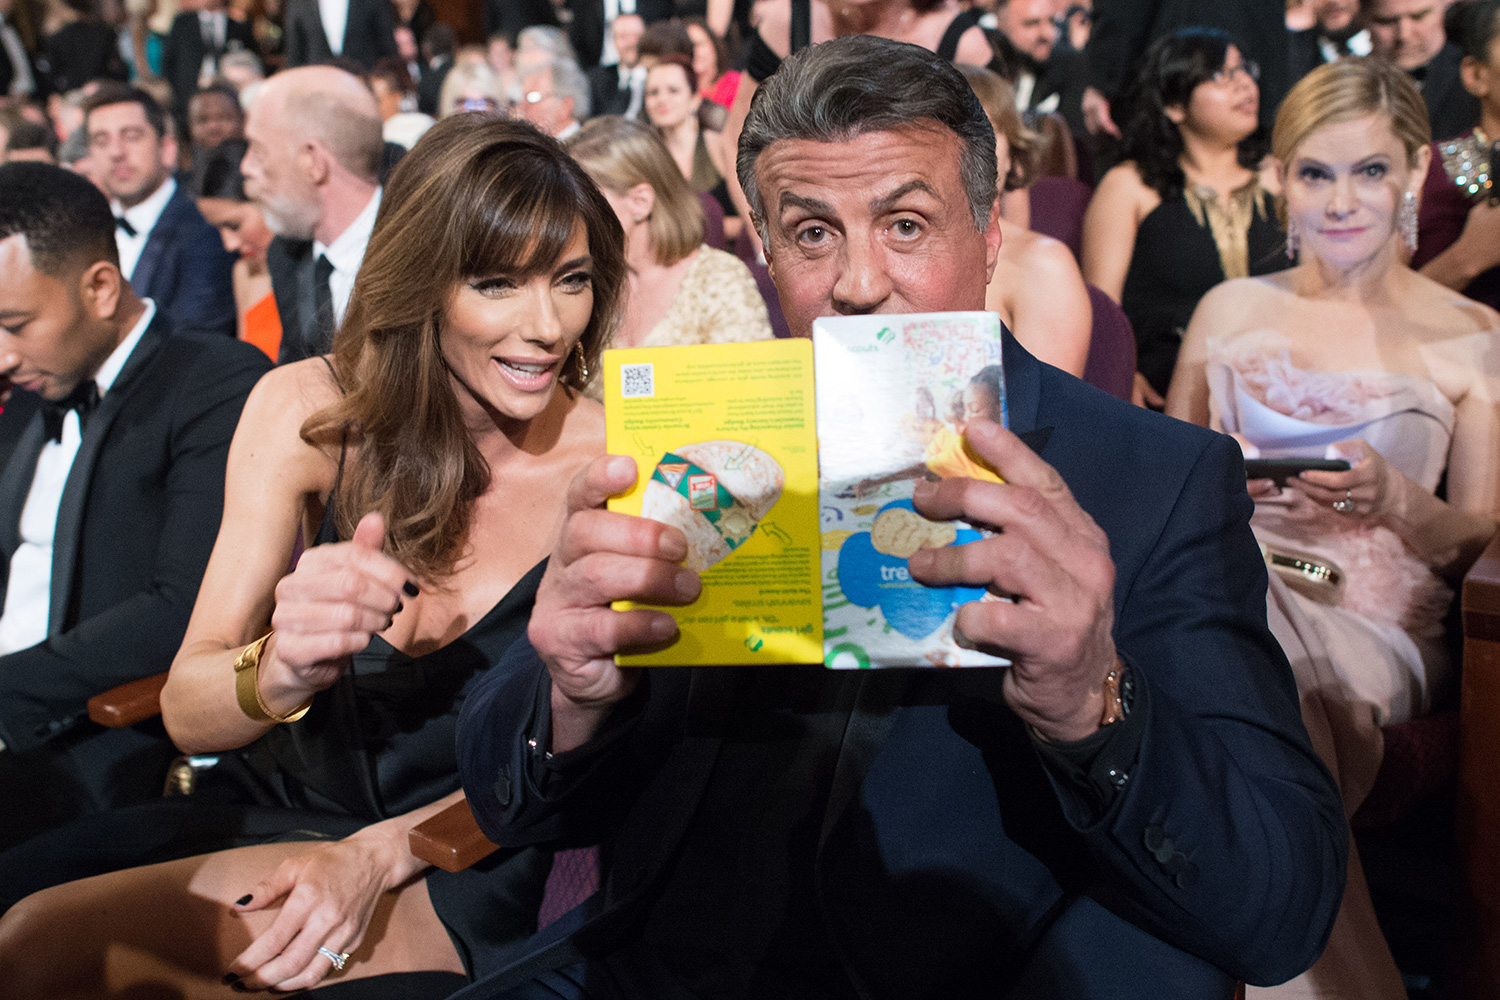 Jennifer Flavin and Oscar-nominee Sylvester Stallone during the live ABC Telecast of The 88th Oscars® at the Dolby® Theatre in Hollywood, CA on Sunday, February 28, 2016.